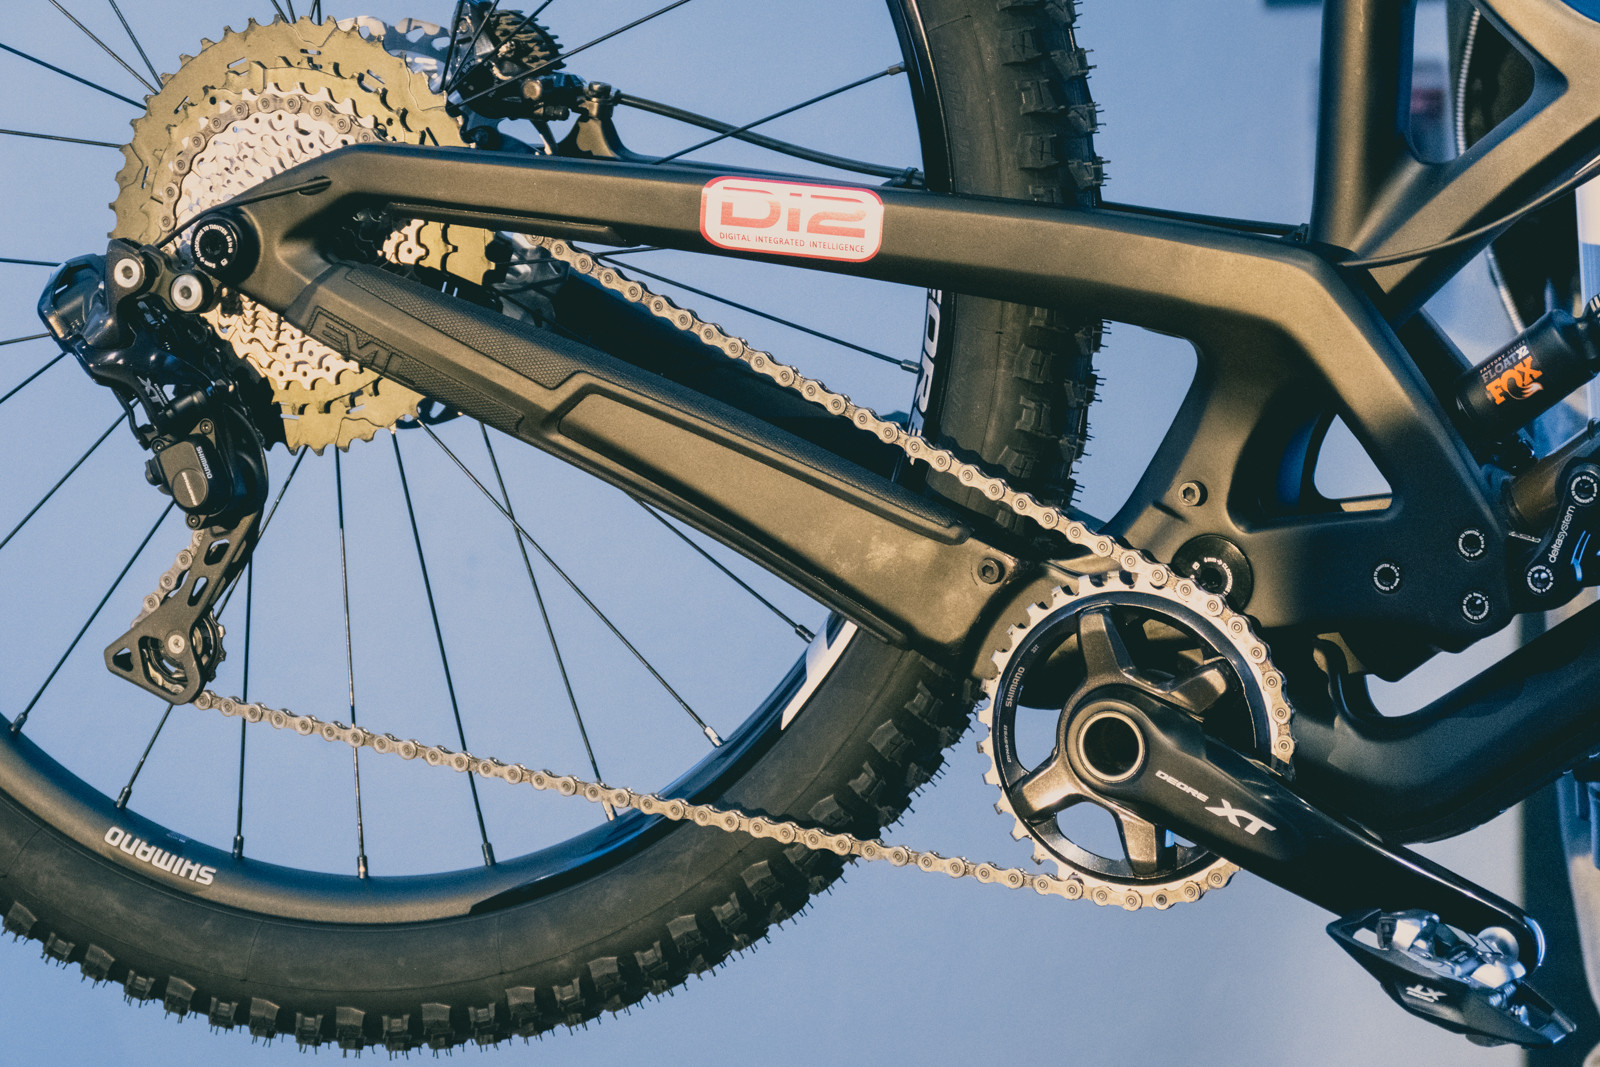 4784c6bebf6 Now, in 2016, Shimano is introducing Deore XT M8050 which brings price  points down to a more accessible level, includes a new 11-speed 11-46 tooth  cassette ...